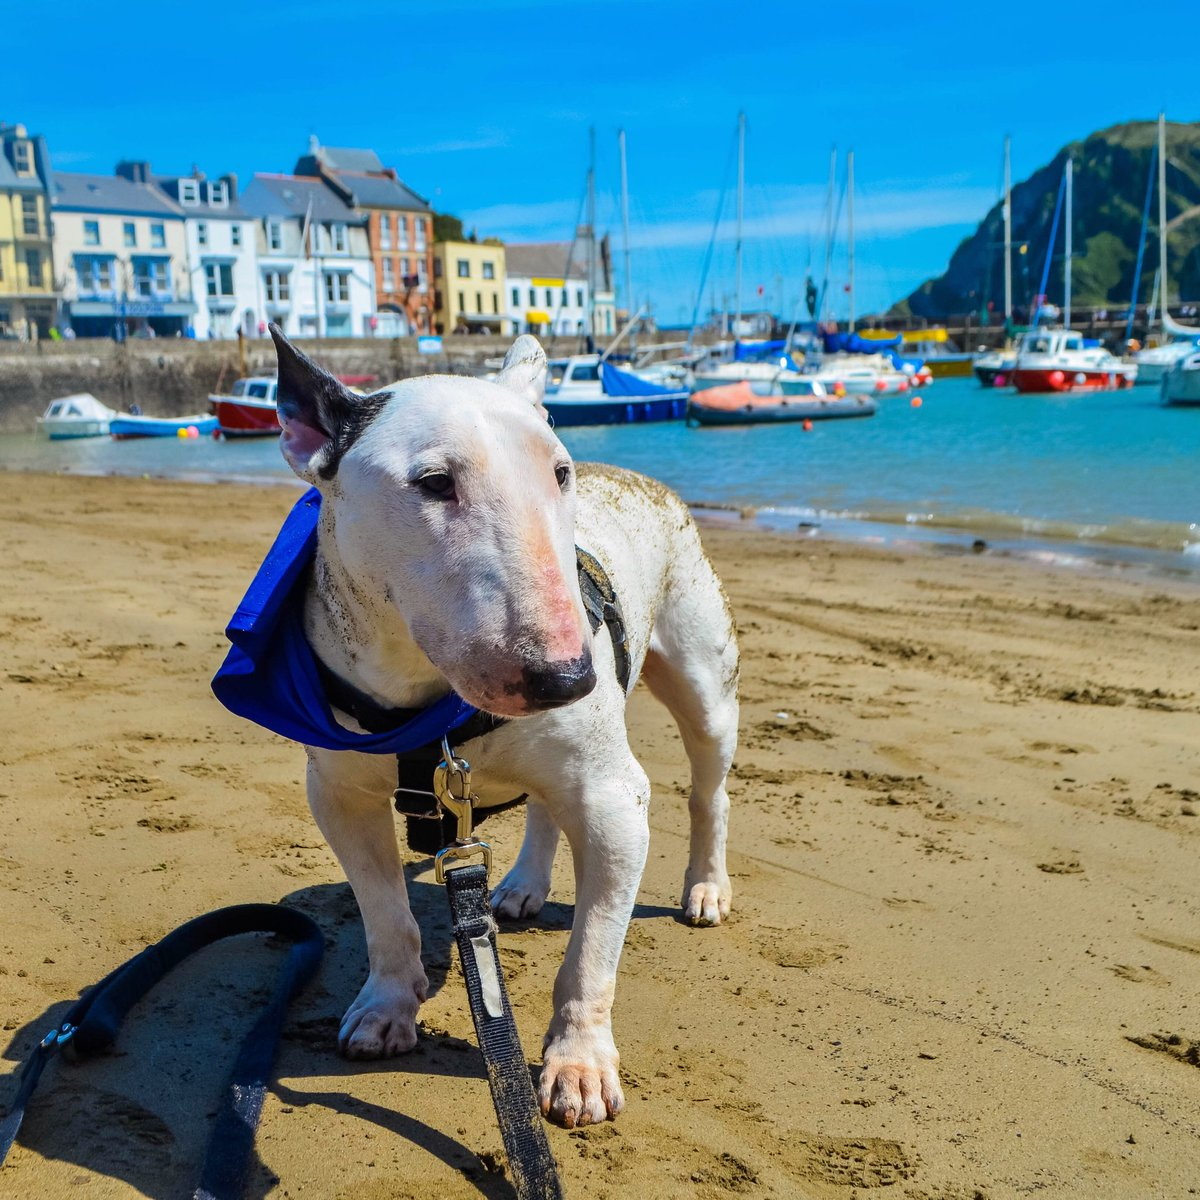 Happiest when by the sea and when rolling around on the sand Do you love the sea too? . . #bullterrier #englishbullterrier #bullies #dogfriendly #dogsarefamily #adventuredog #dogswelcome #mansbestfriend #ilovemydog #traveldog #dogtraveler #bullterrierlovers #dogpassport #devon<br>http://pic.twitter.com/b9h2ZZLkJq